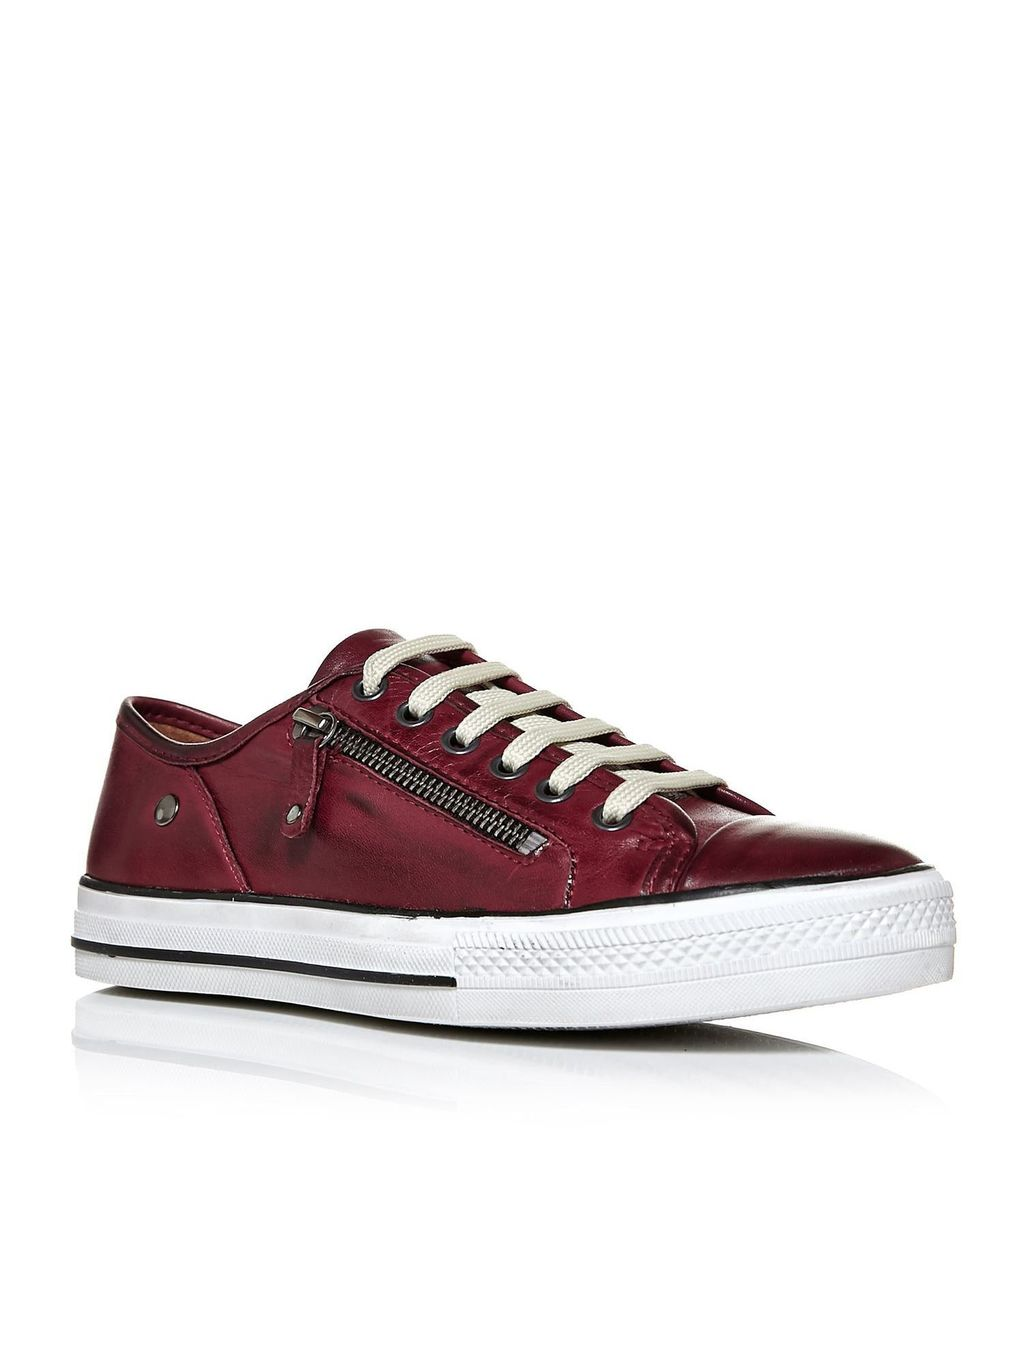 Fianntas Lace Up Trainers, Burgundy - secondary colour: white; predominant colour: burgundy; occasions: casual, activity; material: leather; heel height: flat; toe: round toe; style: trainers; finish: patent; pattern: colourblock; shoe detail: moulded soul; season: s/s 2016